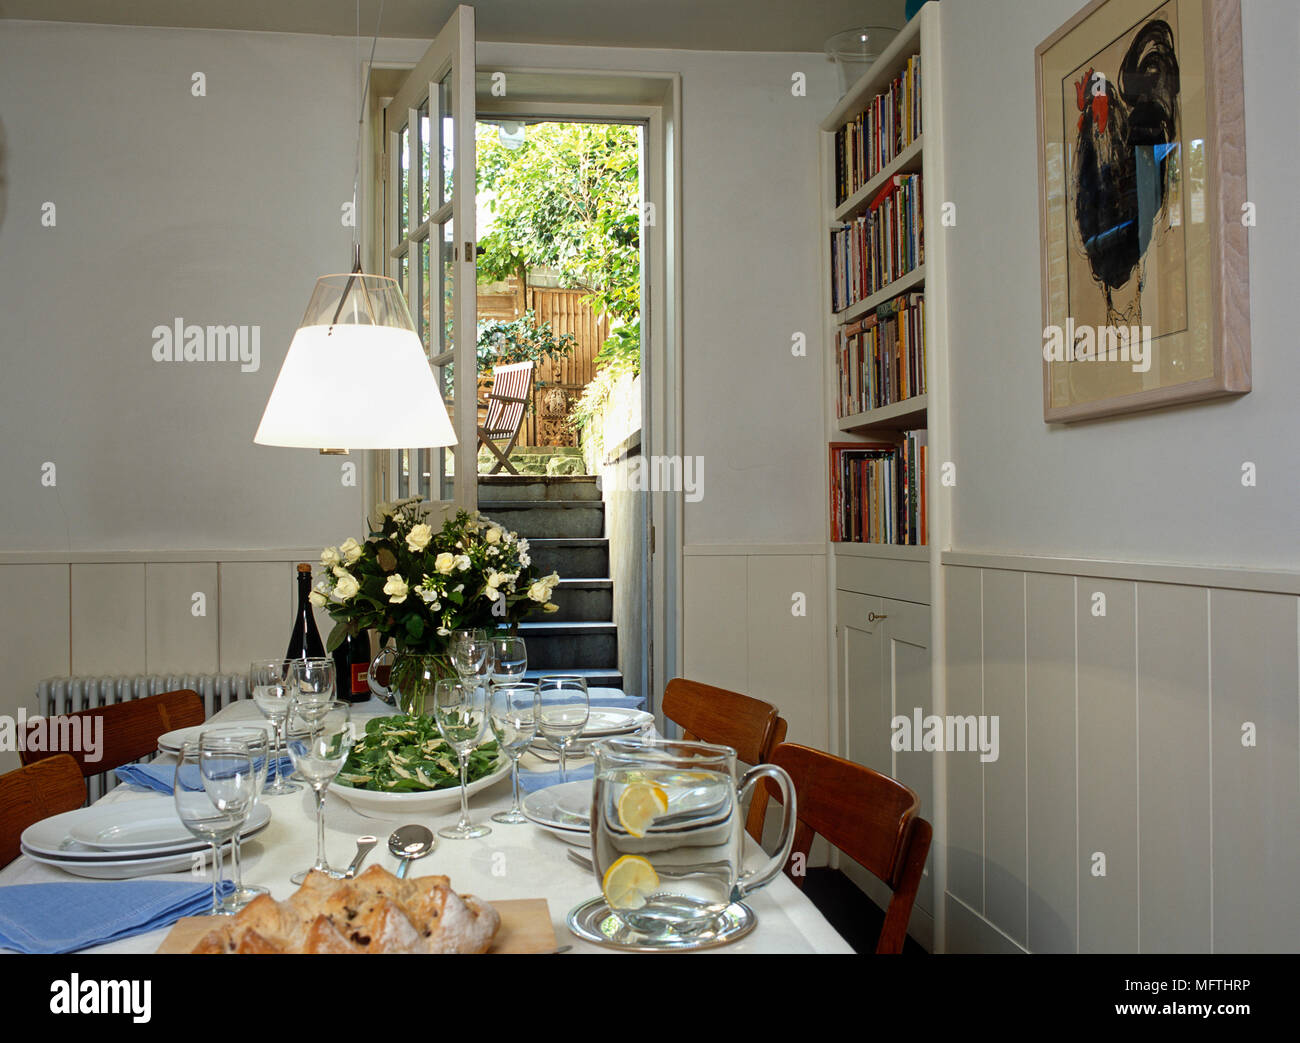 A view of a country dining room with a table set for lunch a lamp